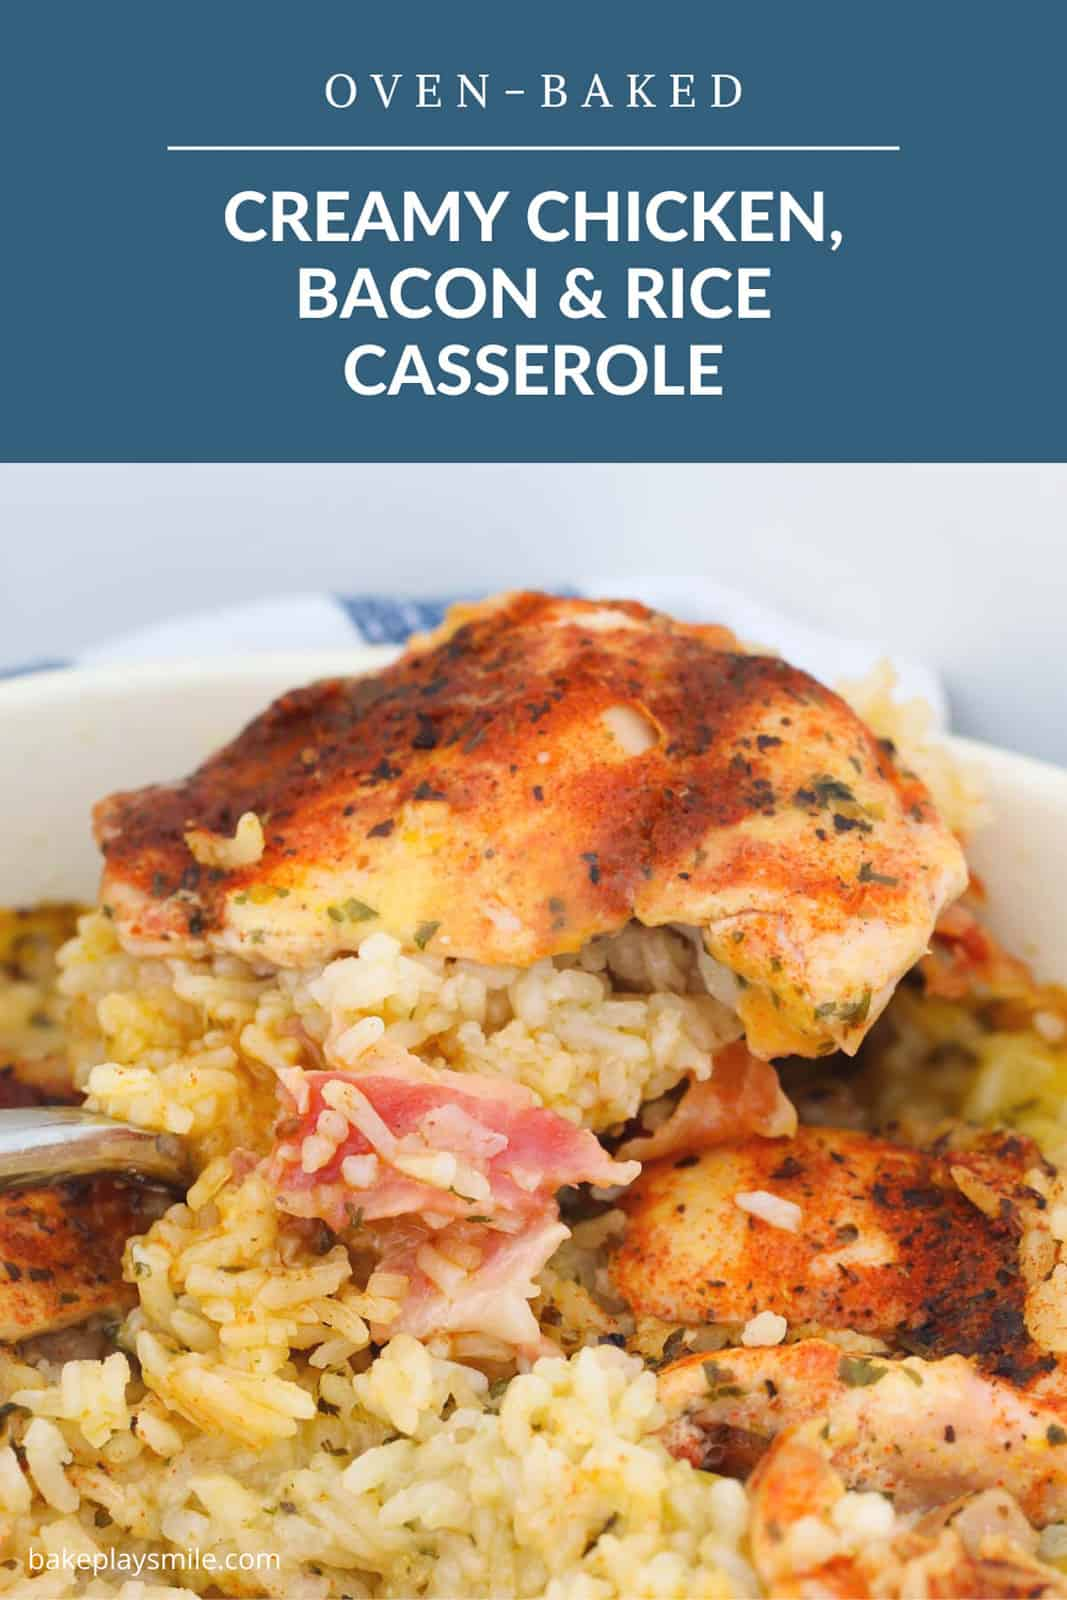 A casserole dish filled with spiced chicken, bacon and rice in a creamy sauce